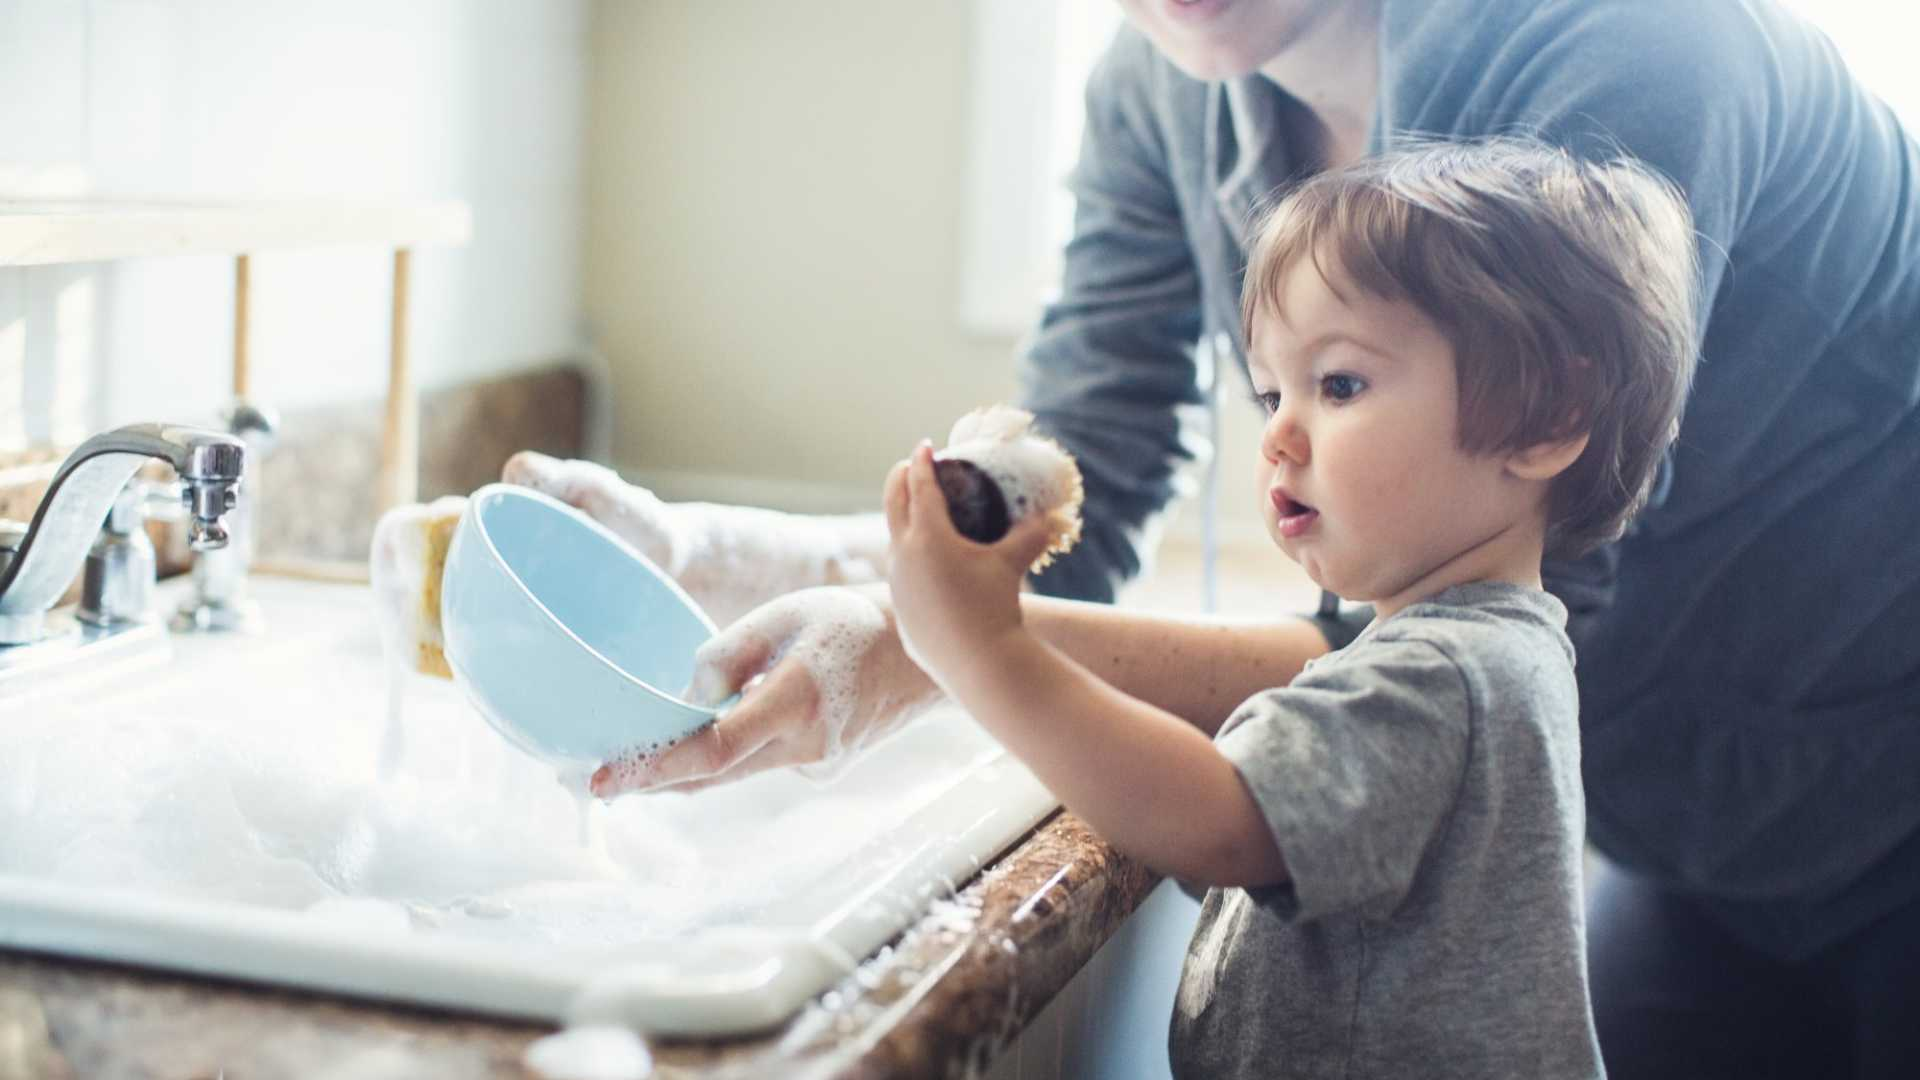 Why You Should Handle Your Procrastinating Brain the Same Way You'd Handle a Toddler